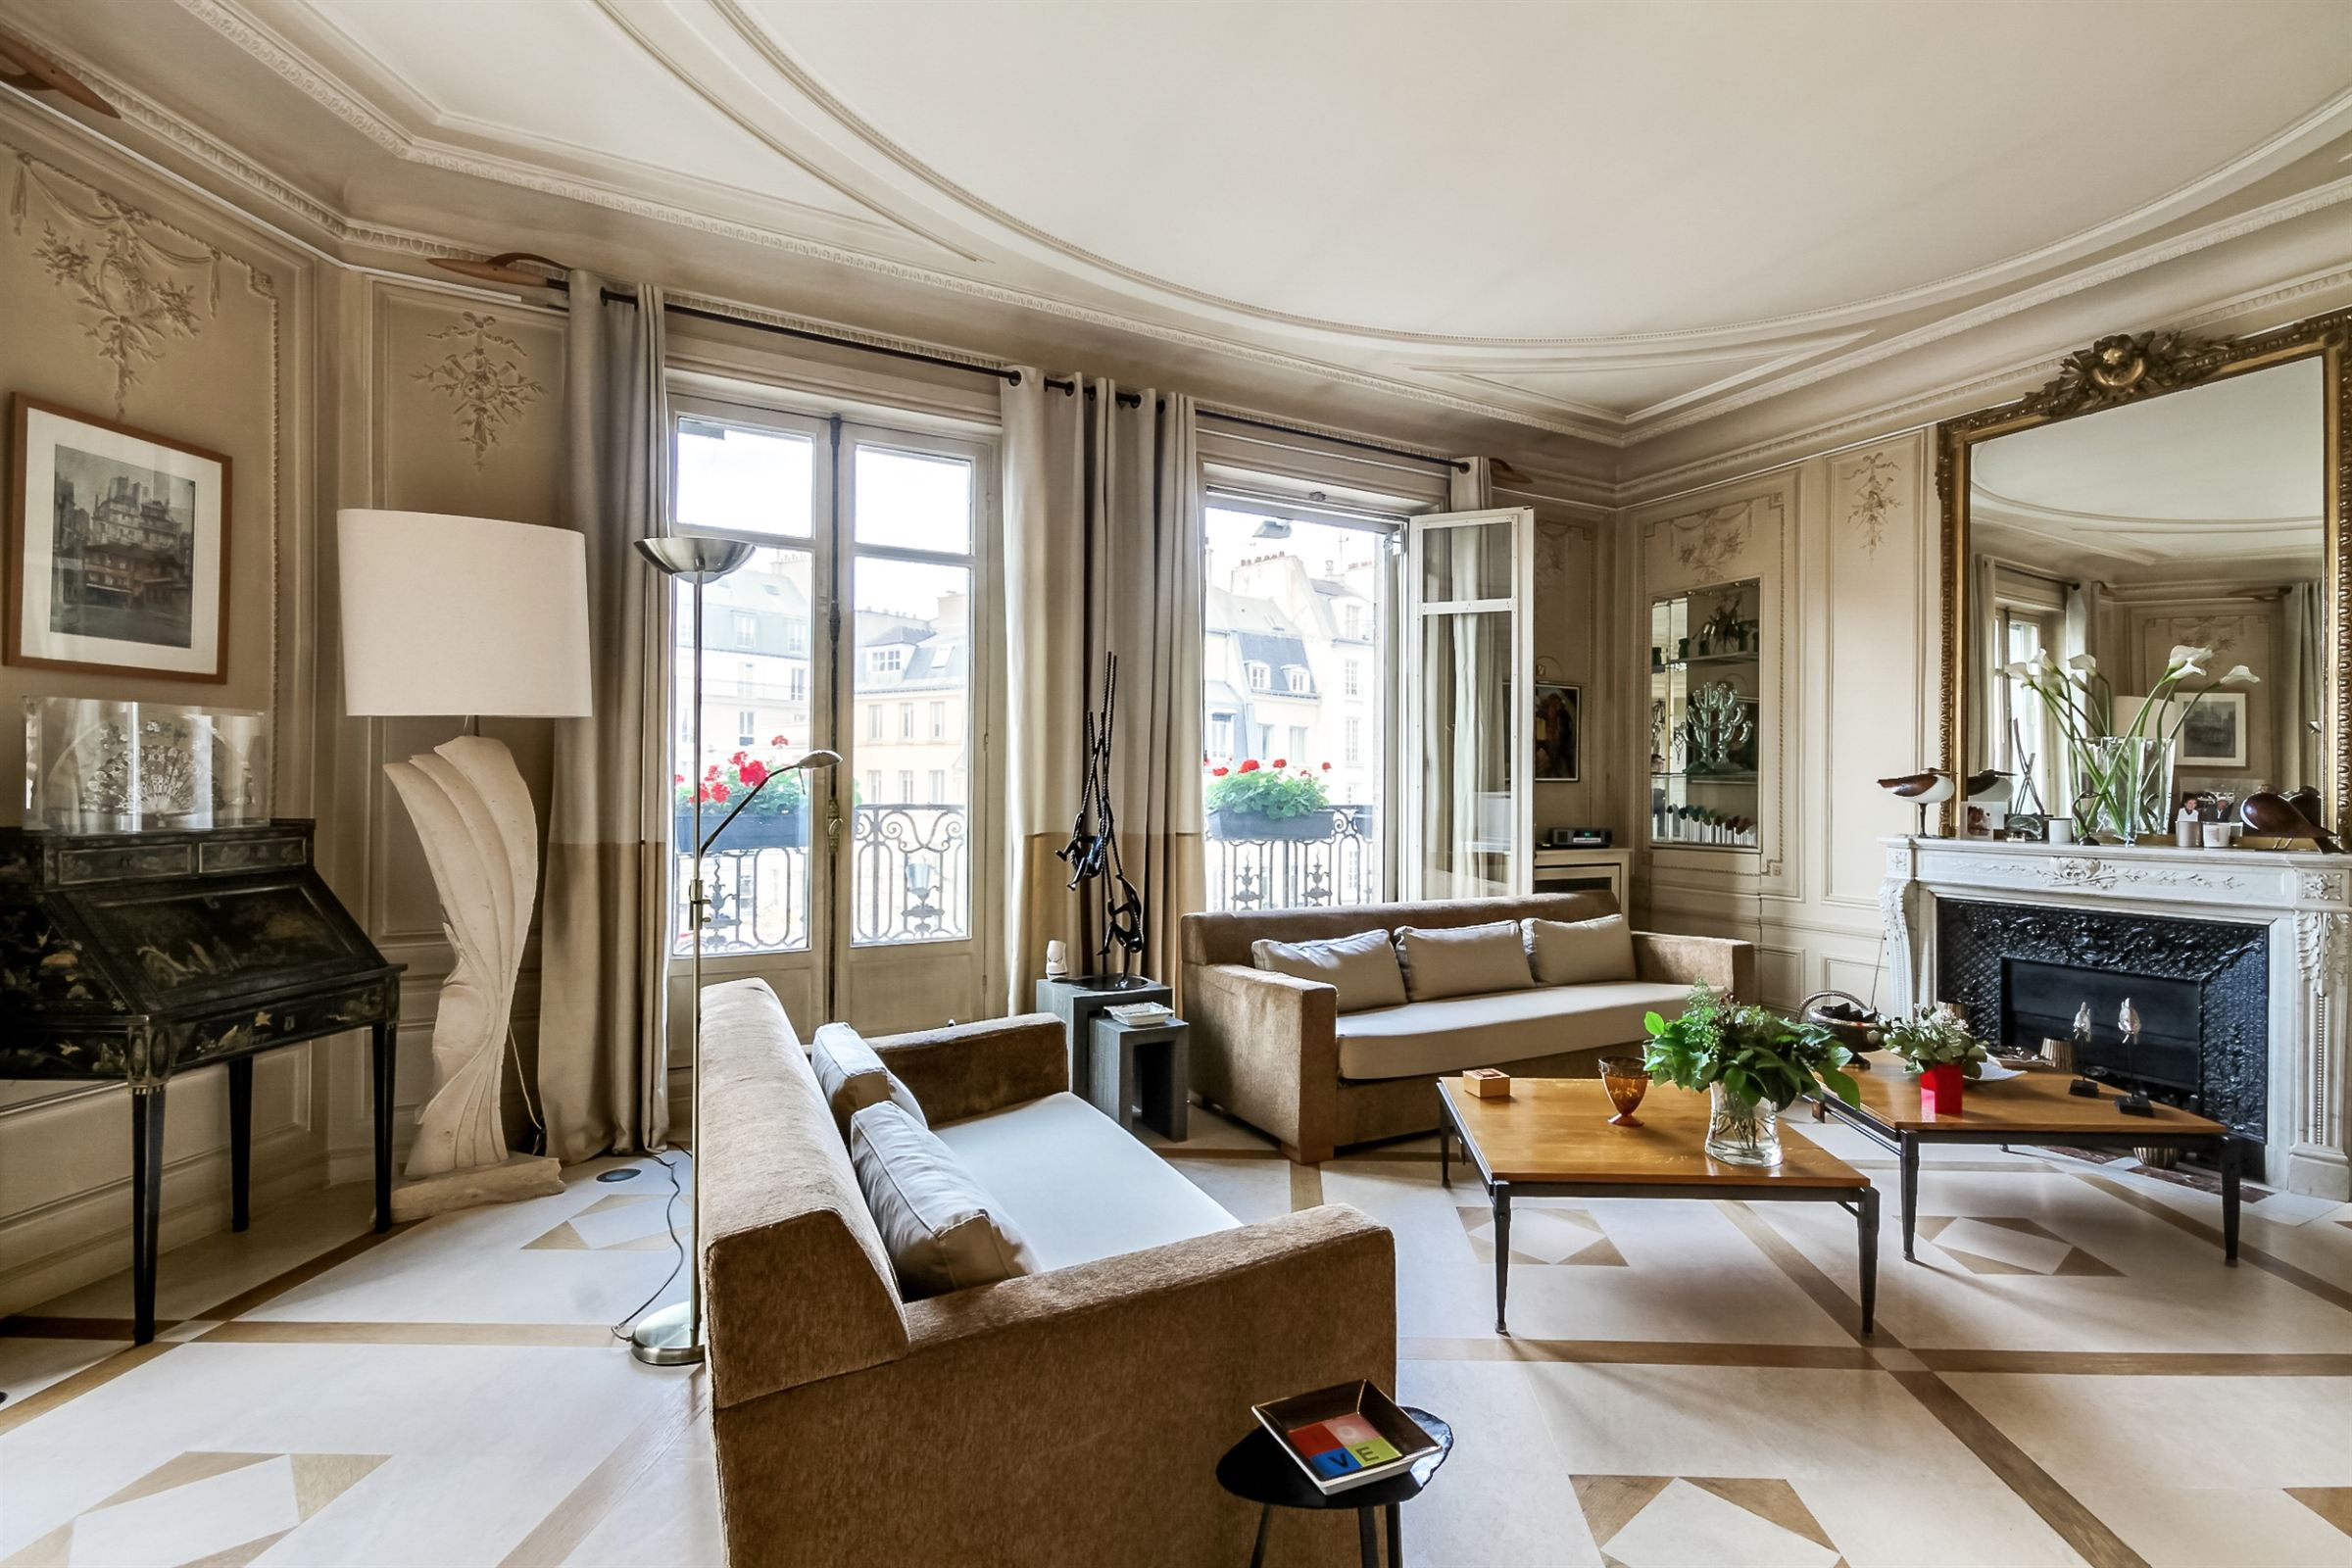 Property For Sale at Paris 6 - St-Germain. Apartment 157 sq.m.. Open view